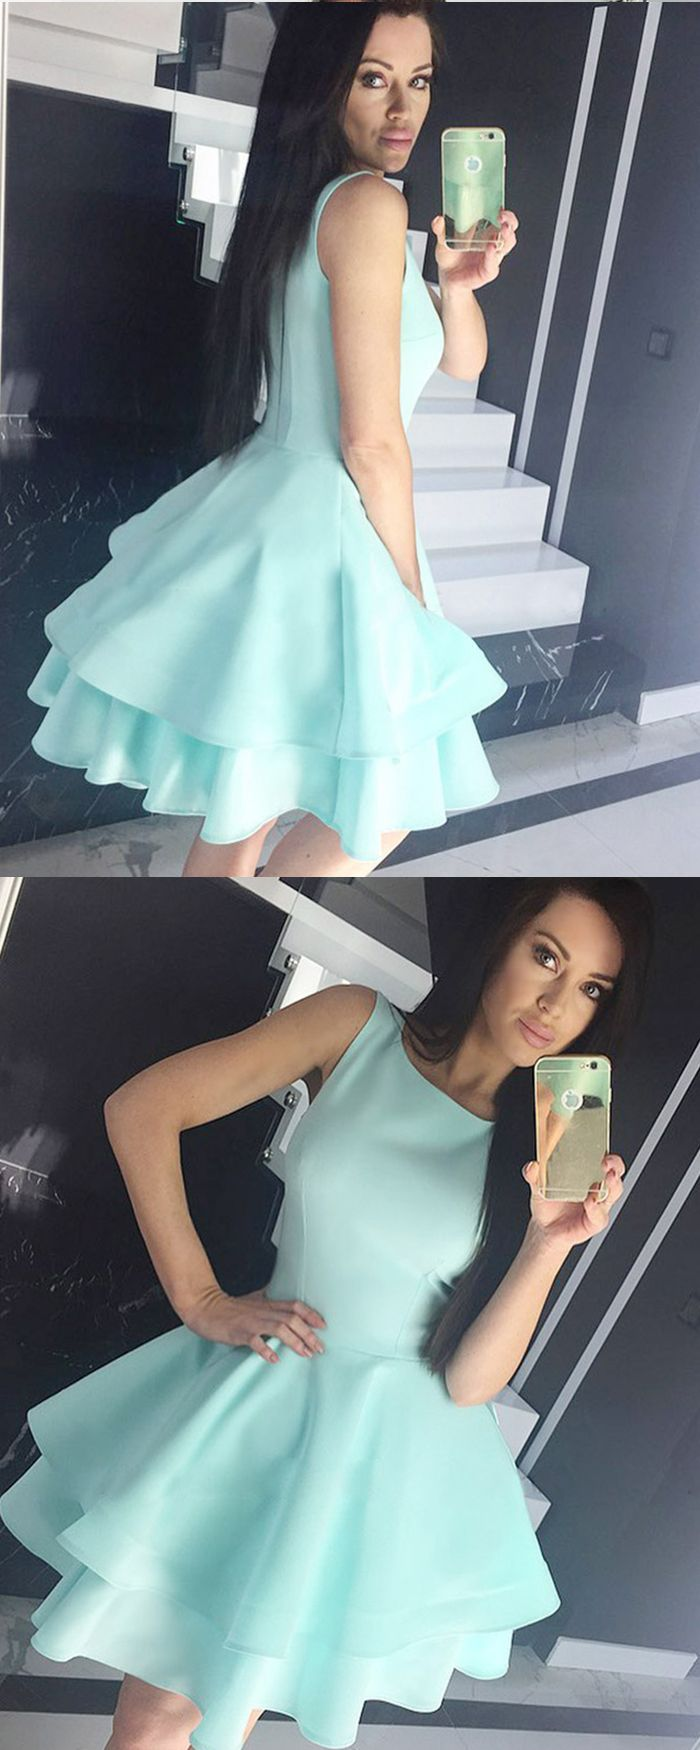 Jewel cyan fit u flare satin homecoming dress with layered skirt